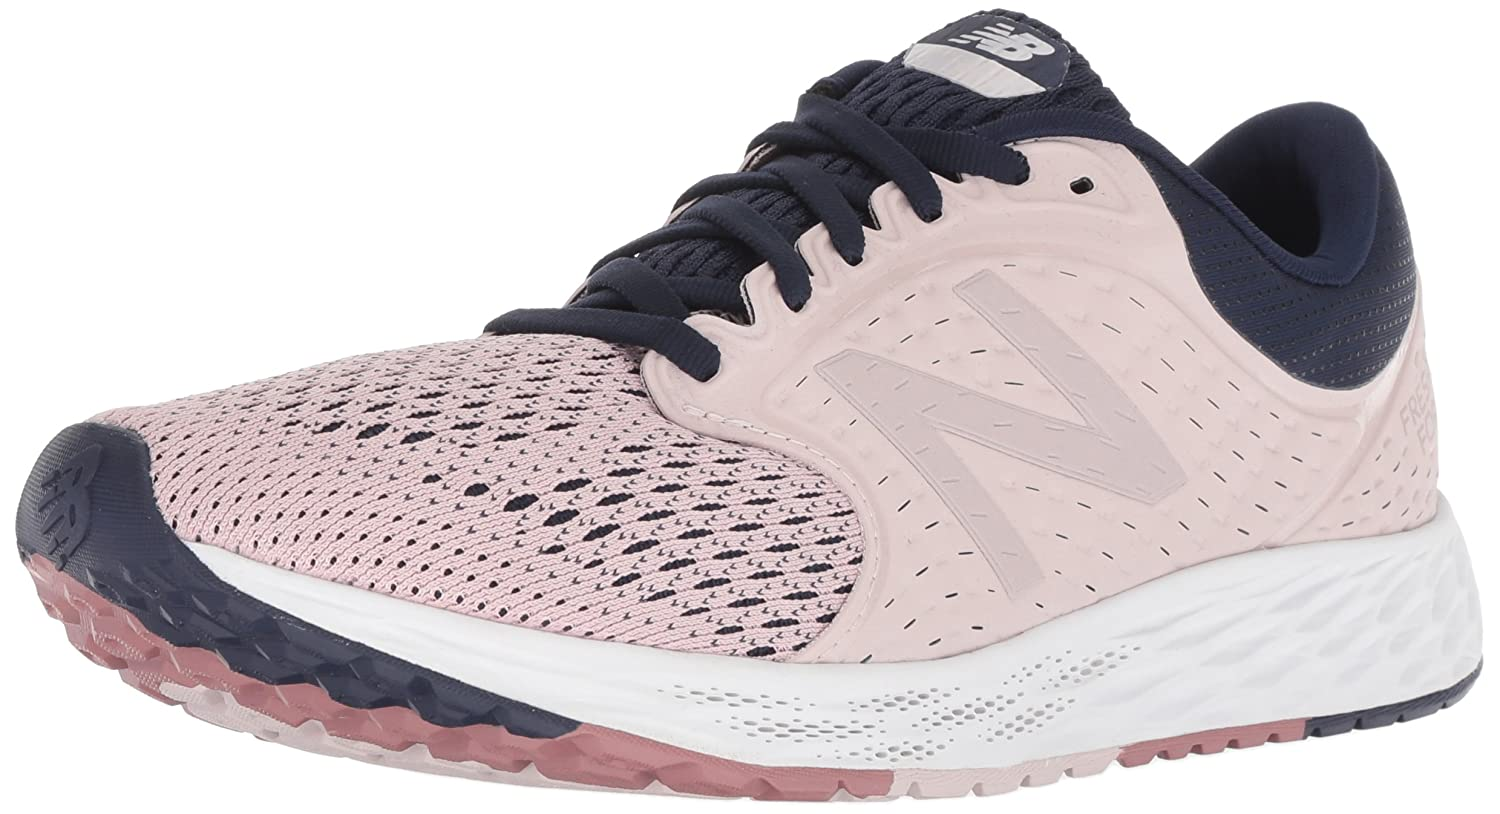 New Balance Women's Zante V4 Fresh Foam Running Shoe B075R755FC 10 D US|Light Pink